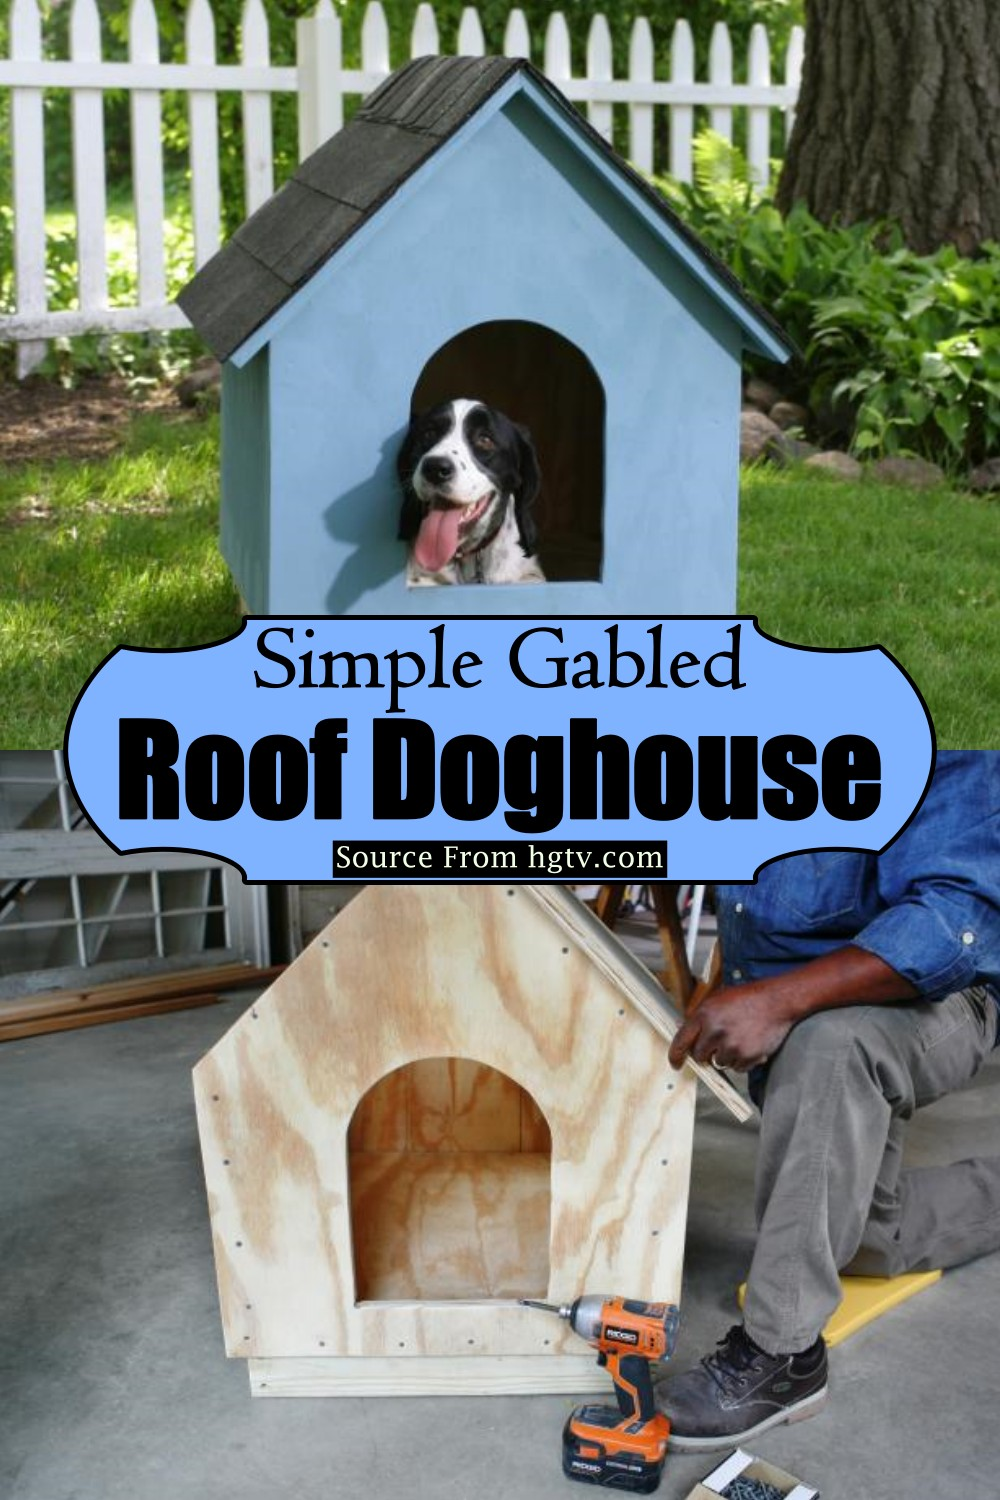 Simple Gabled Roof Doghouse